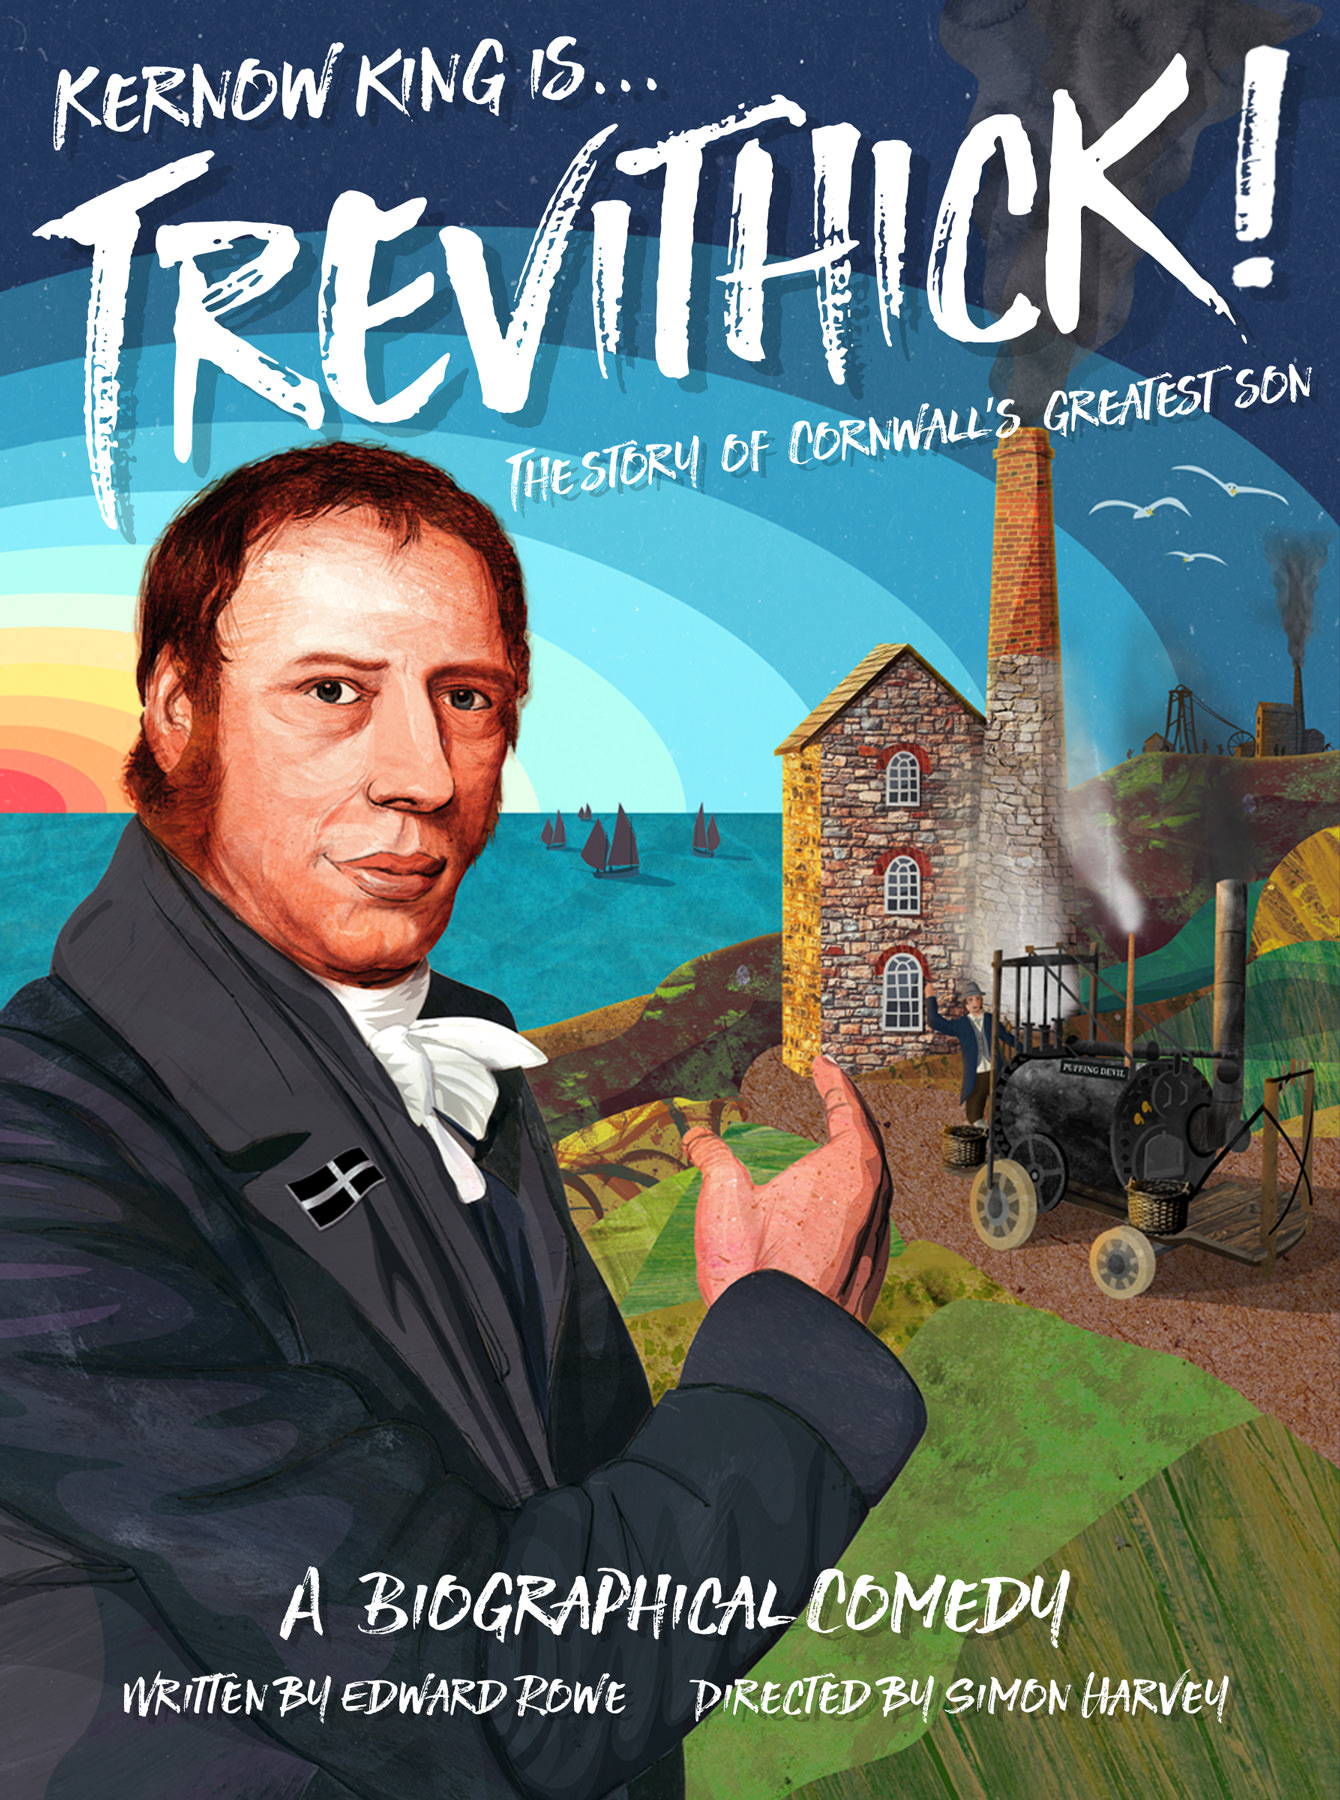 Kernow King is Trevithick! The story of Cornwall's greatest son